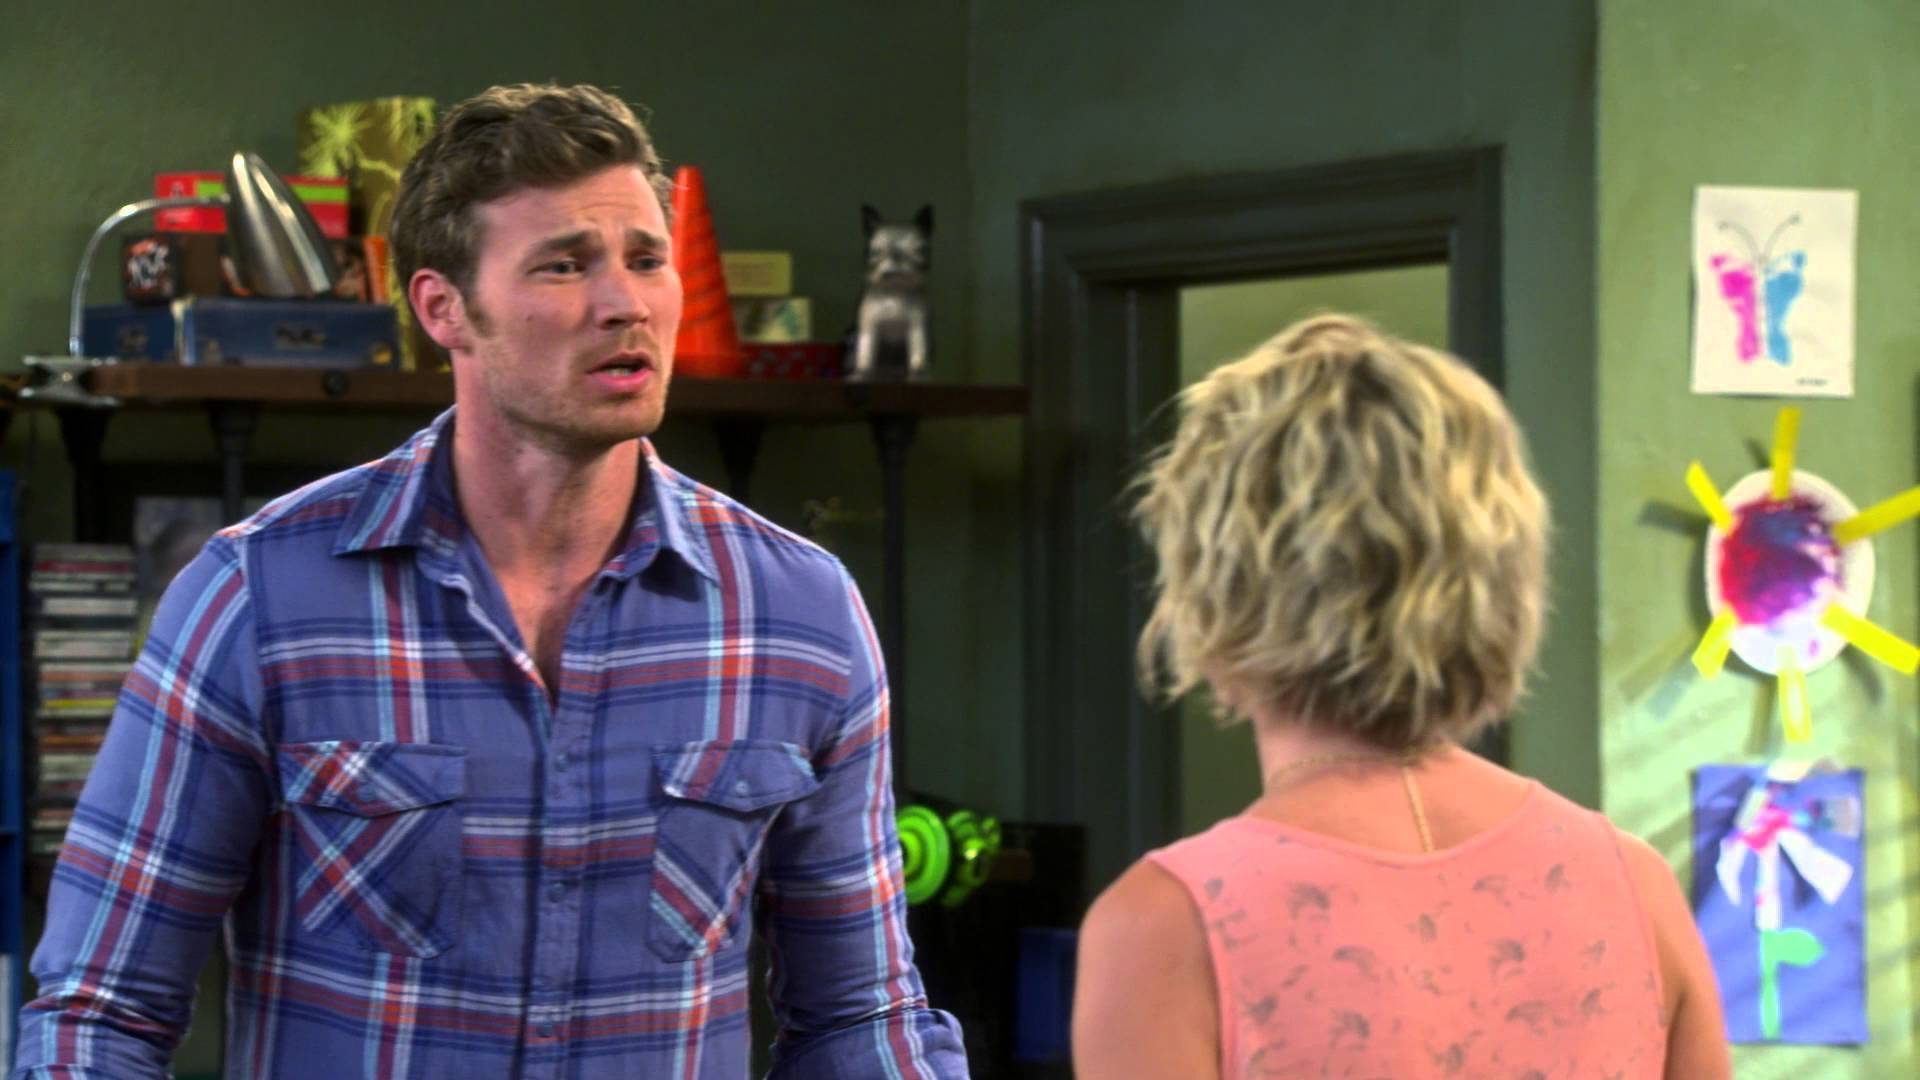 Baby Daddy - The Truck Stops Here (5x04) - CraveyouTV | TV